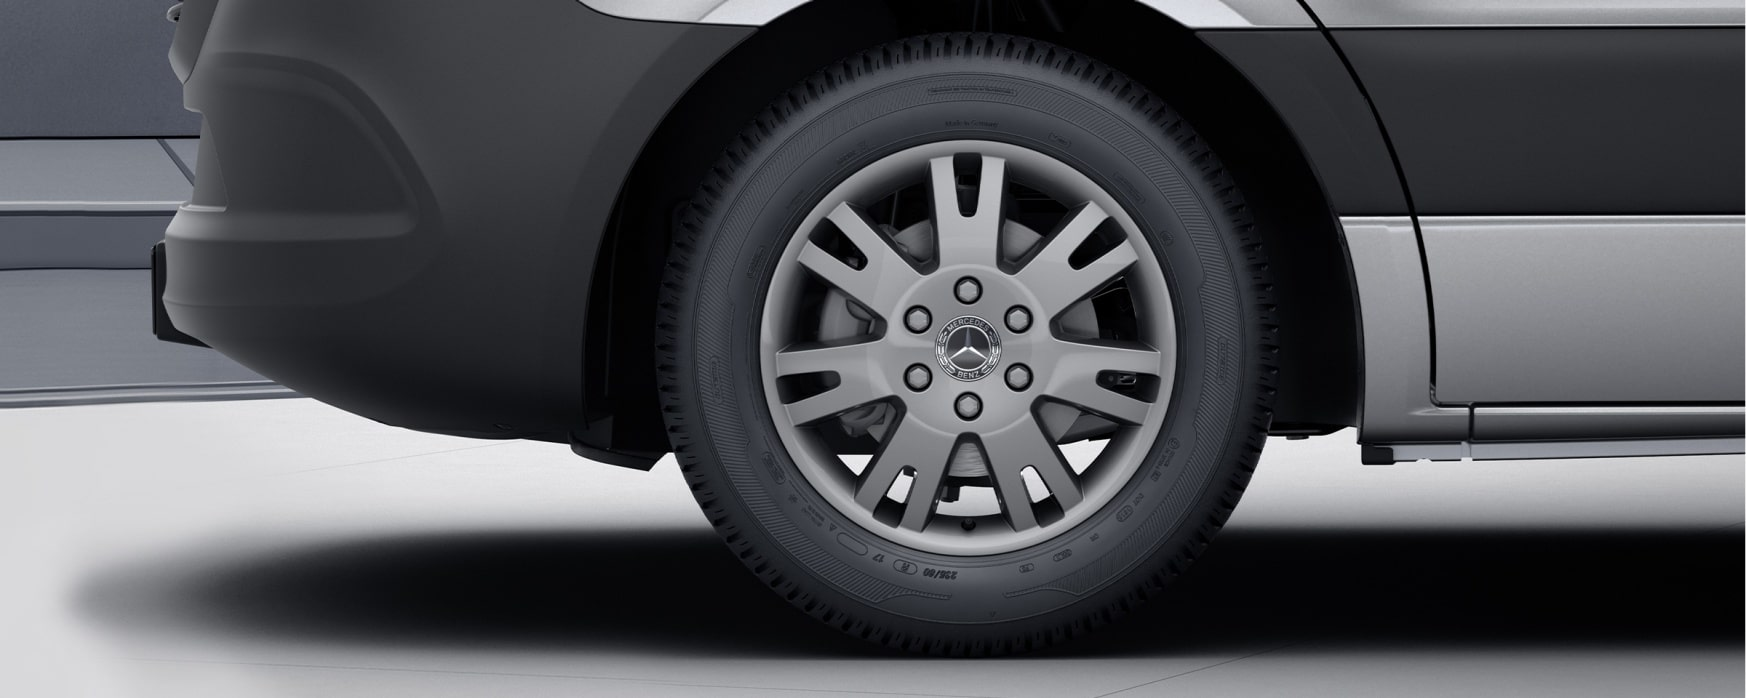 Sprinter Panel Van, 43.2 cm (17-inch) light-alloy wheels - FWD